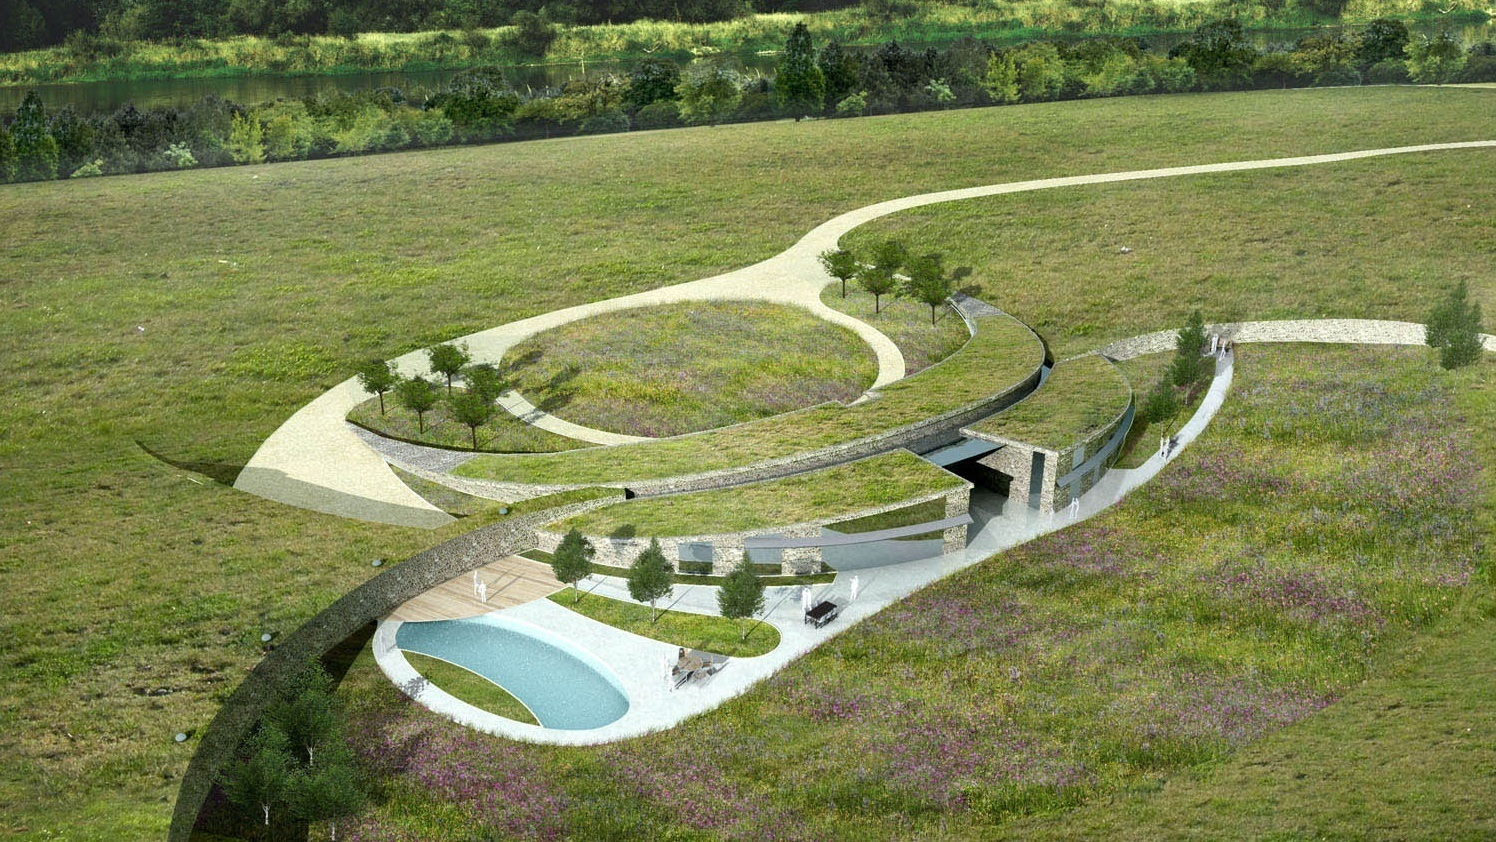 country home of the future rendering from above